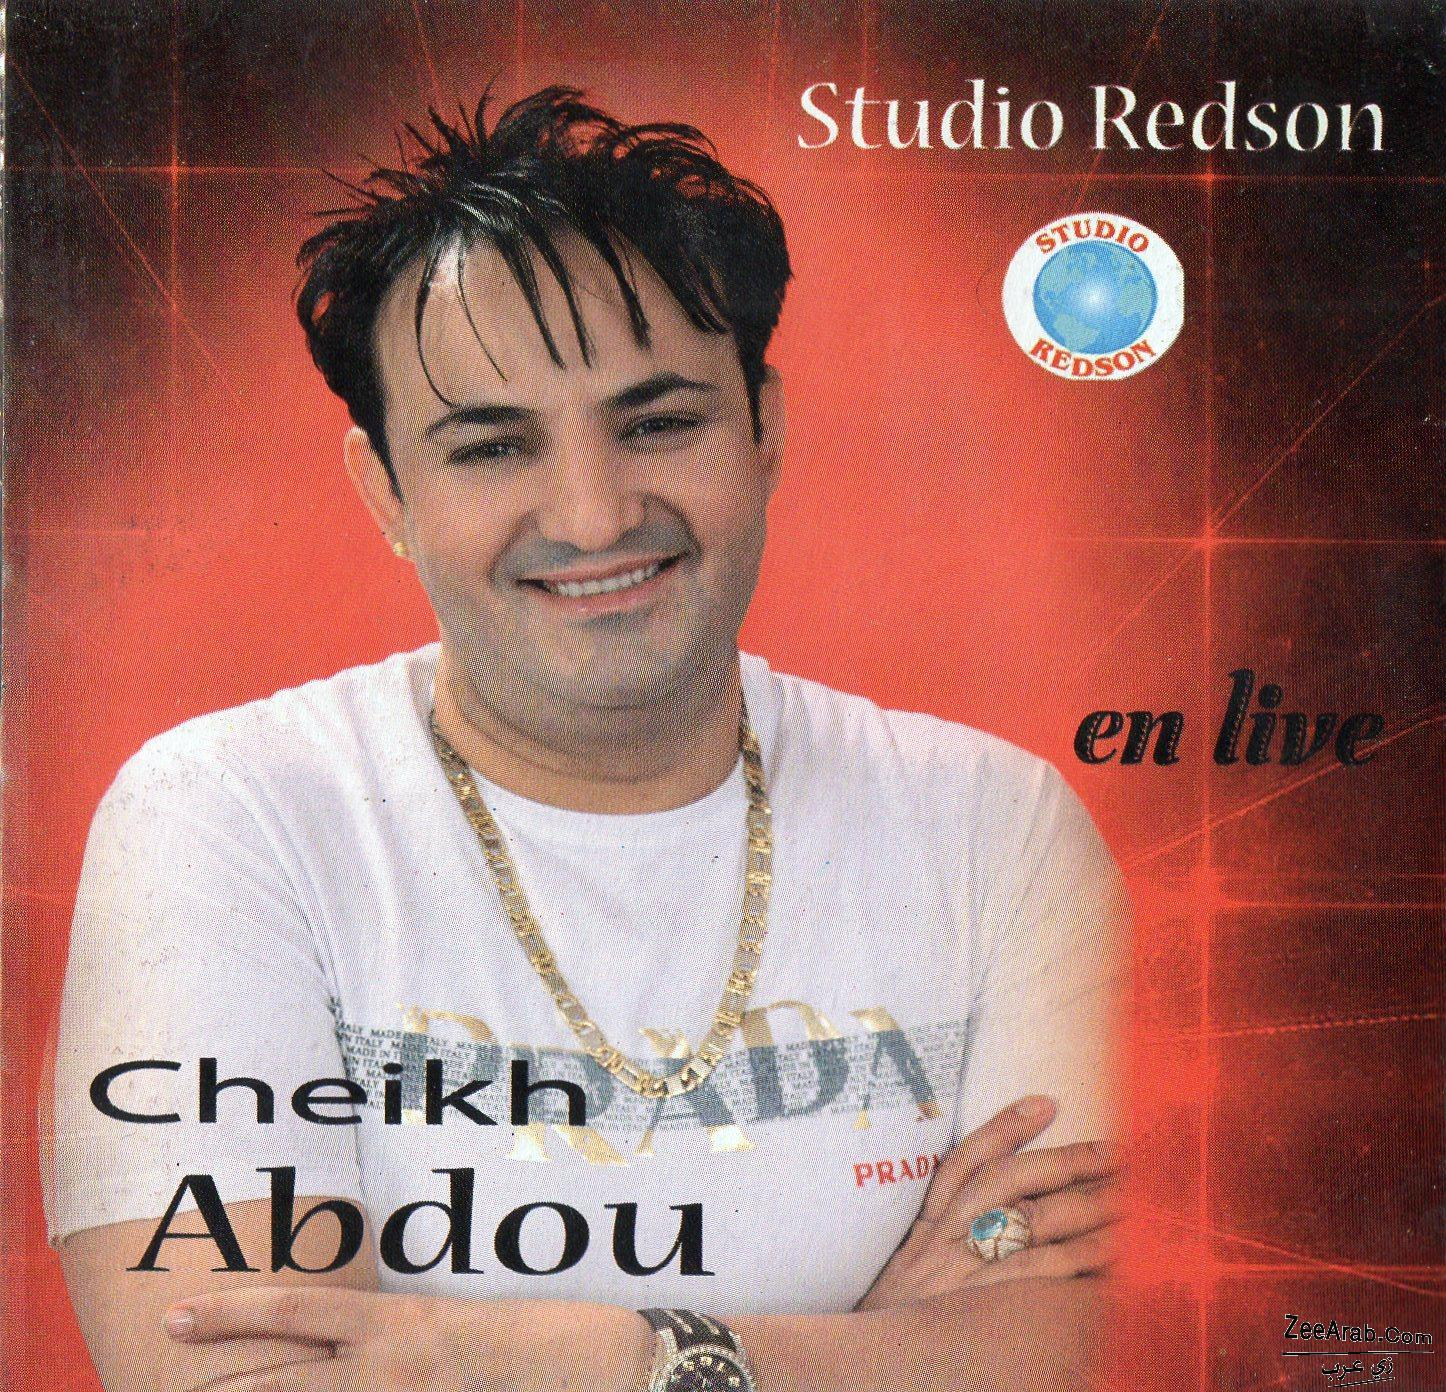 Exlusive Cheikh Abdou  2012 | Album Best Of | Cheikh Abdou  MP3|